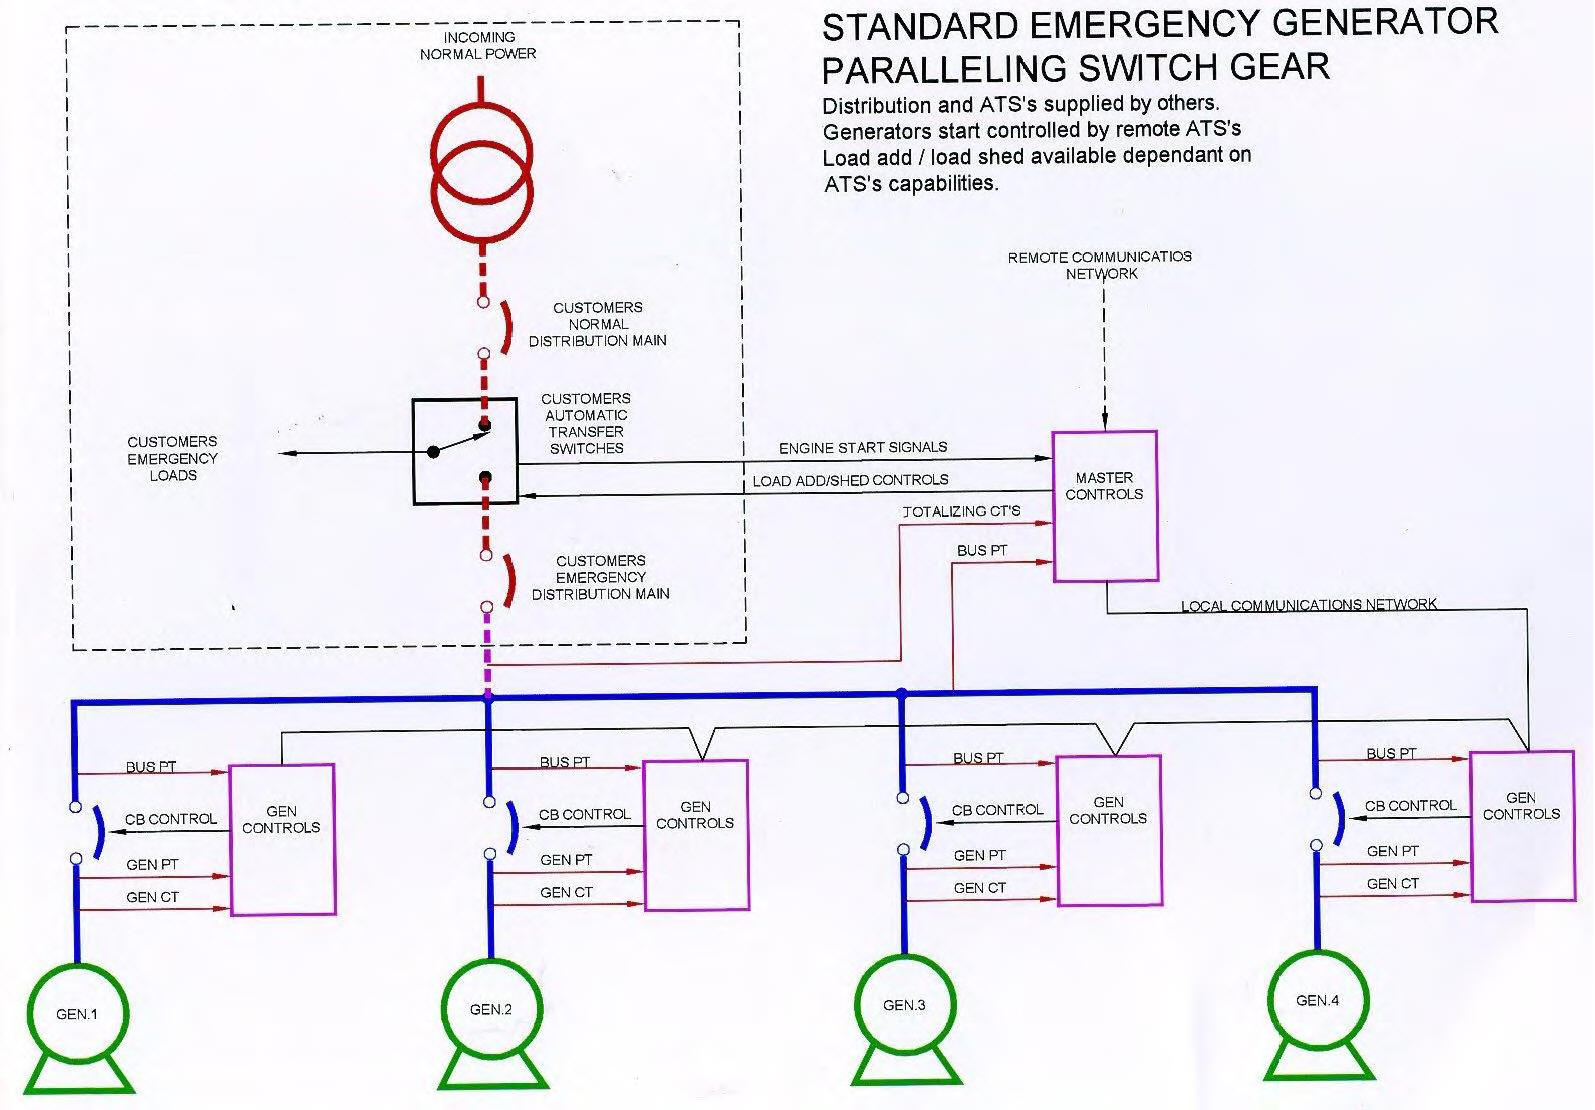 Cb360 Wiring Diagram Simple Guide About Honda Parallel Switchgear Explore Schematic Simplified 1976